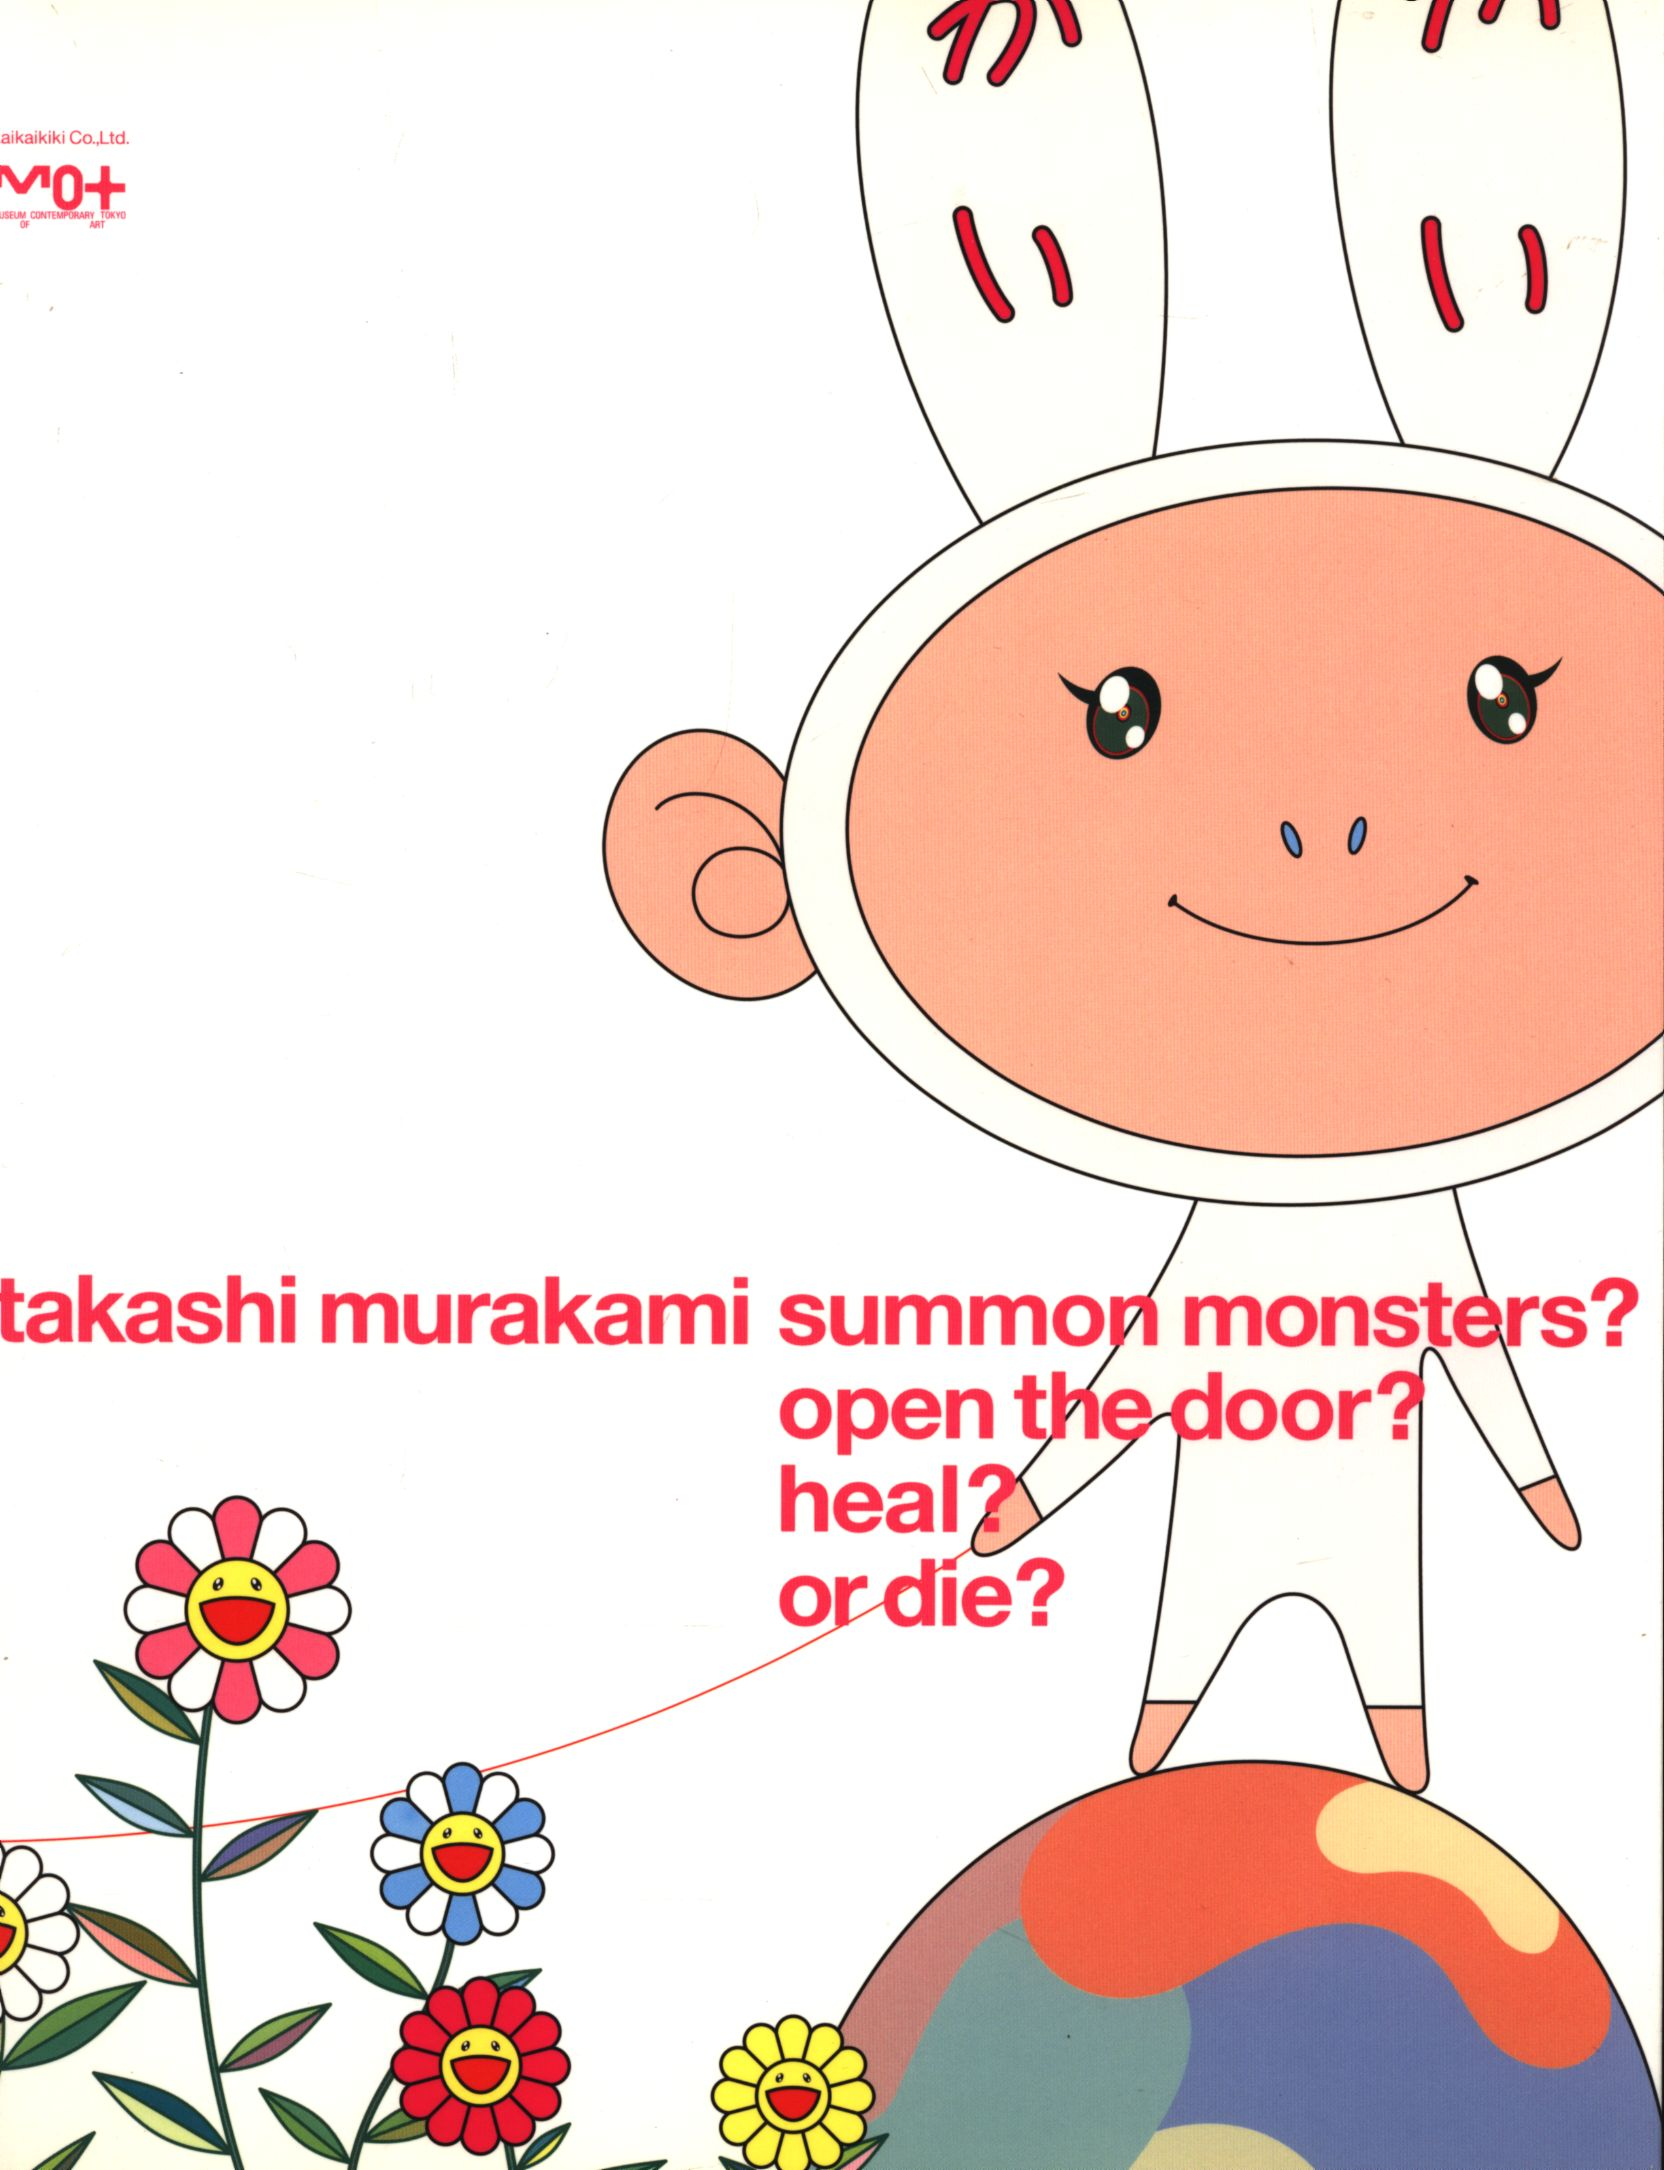 or annihilate open the door Takashi Murakami Whether to summon recover